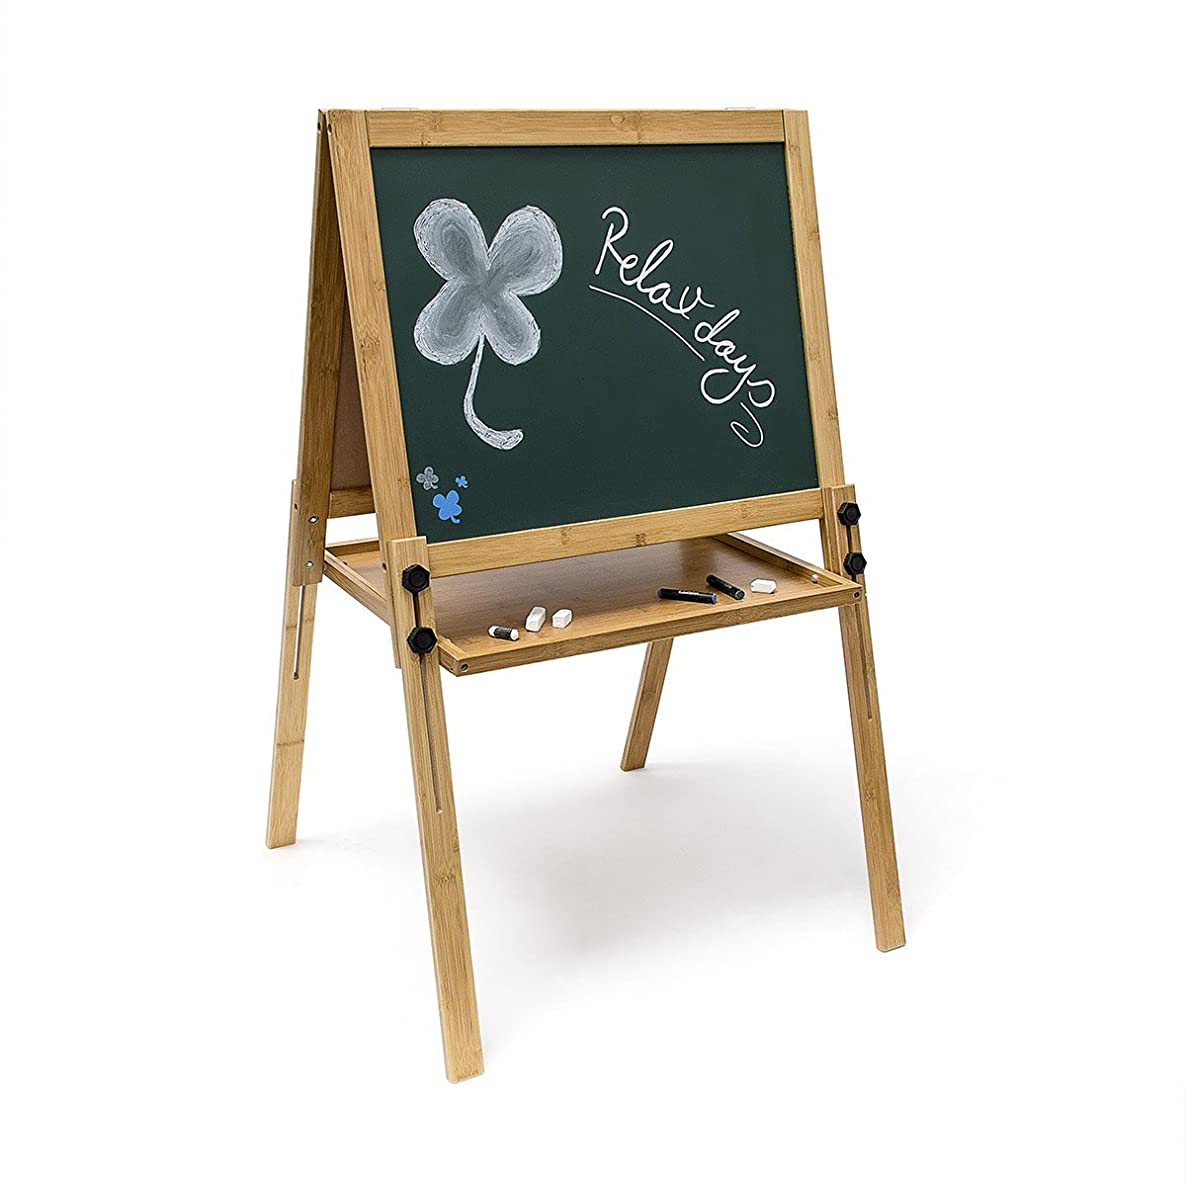 Relaxdays Bamboo Magnetic Blackboard Children's Chalk Board Height Adjustable Whiteboard (93x56.5cm) Dry Erase Board Painting Table Free-Standing Board, Green